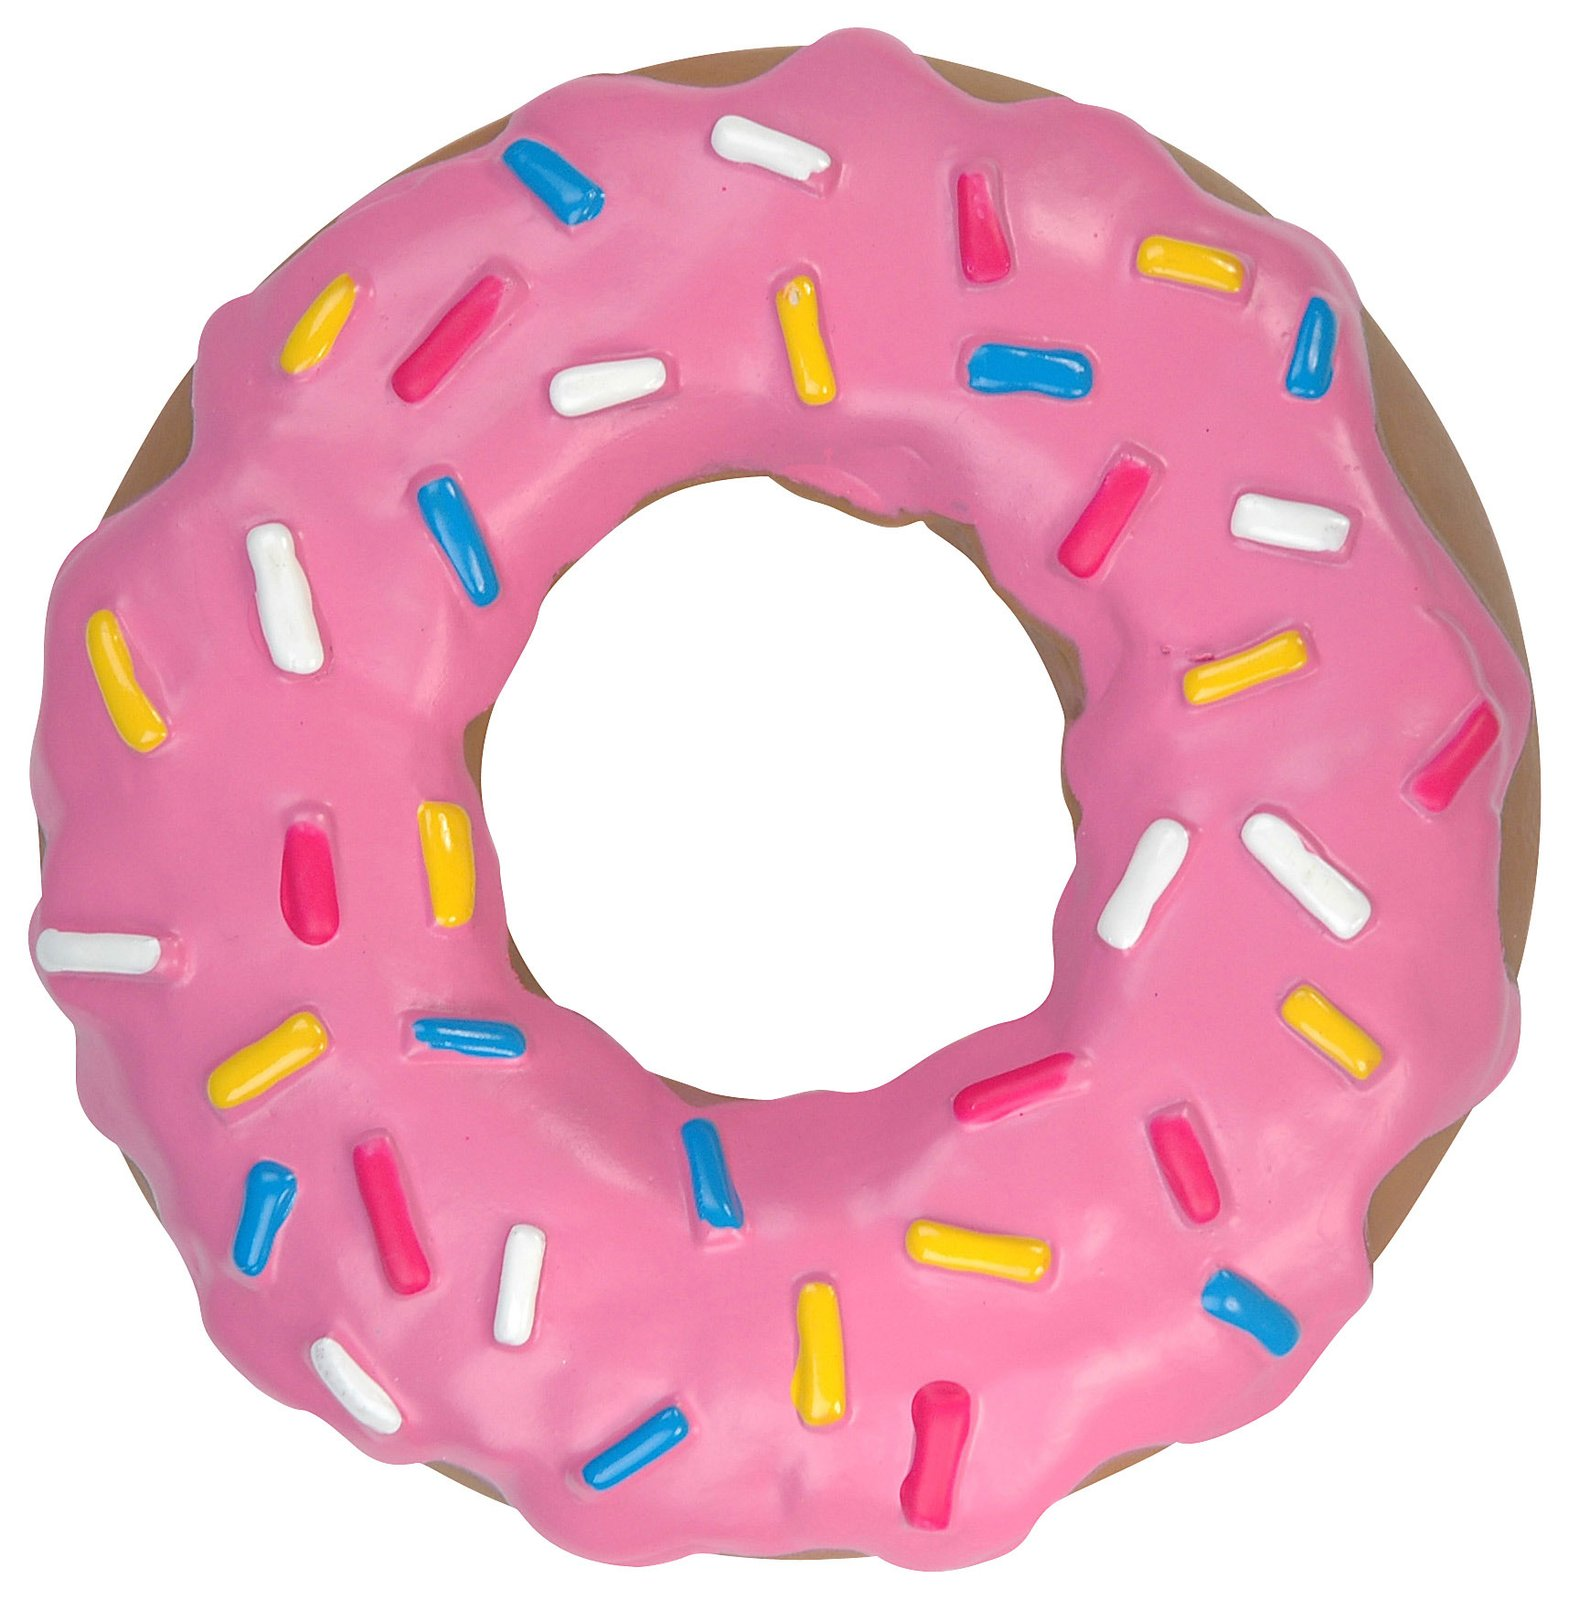 Donut clip art free clipart images 2